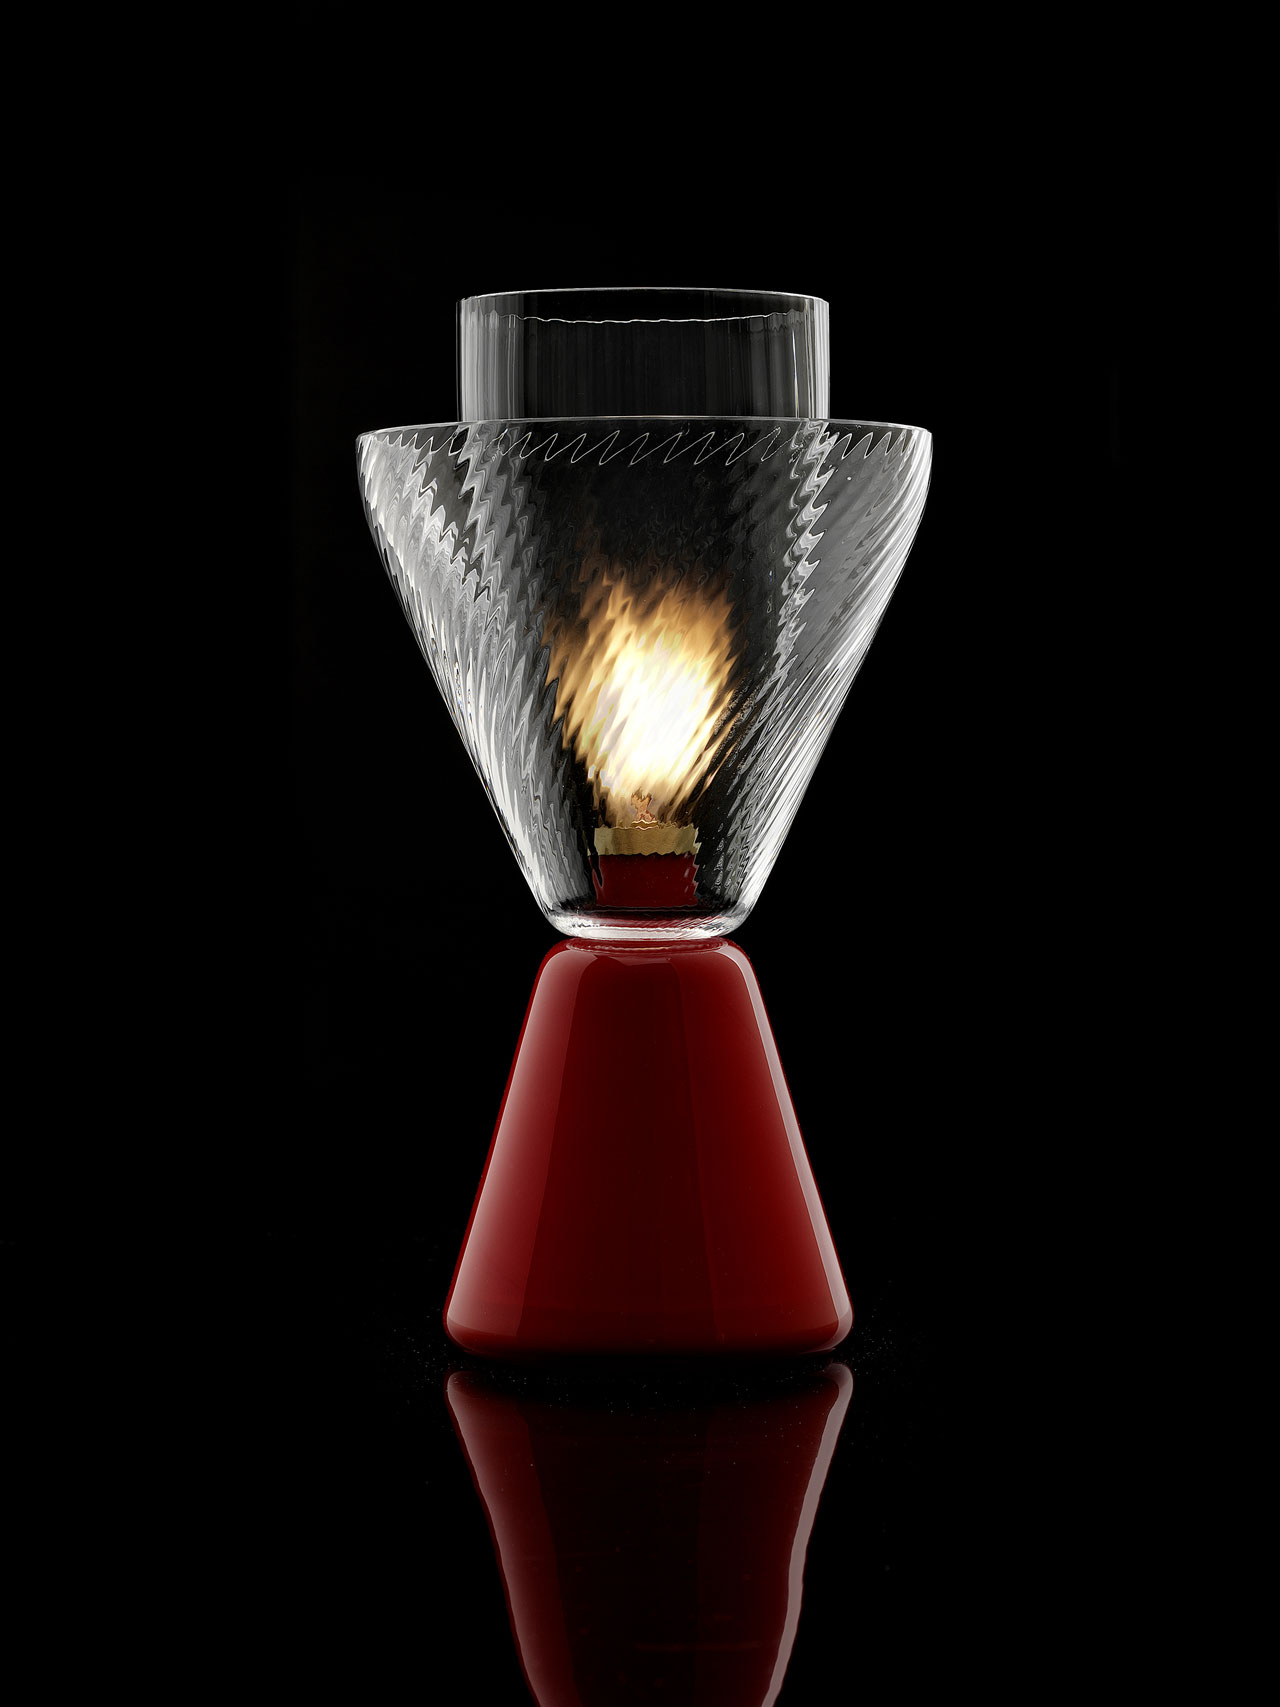 HALO oil lamp by Luca Nichetto for NasonMoretti.